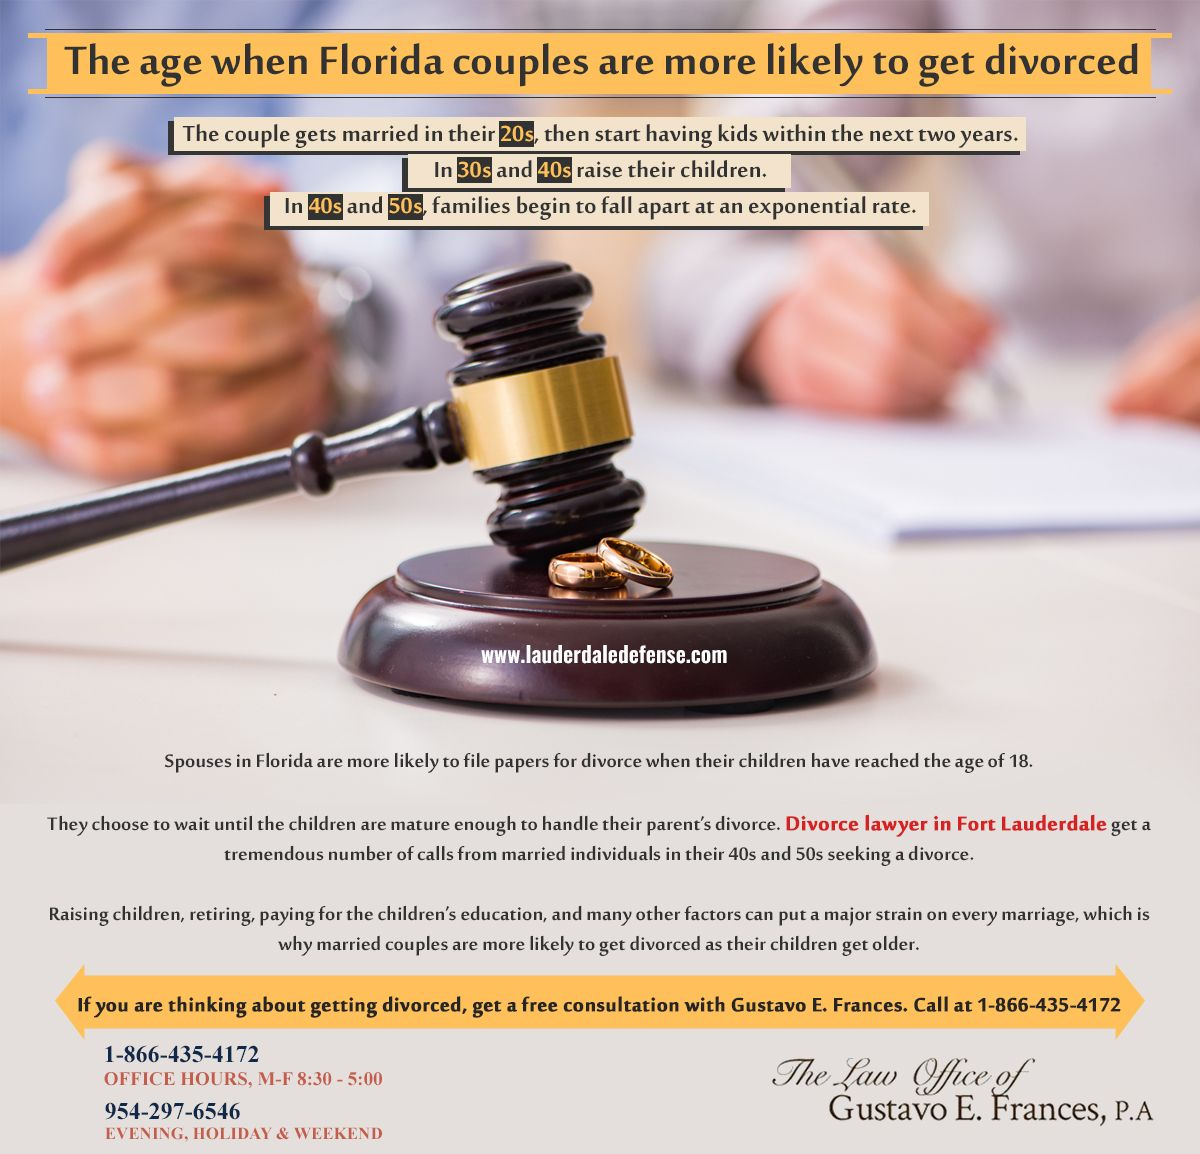 Consult with the FortLauderdaledivorceattorney from the